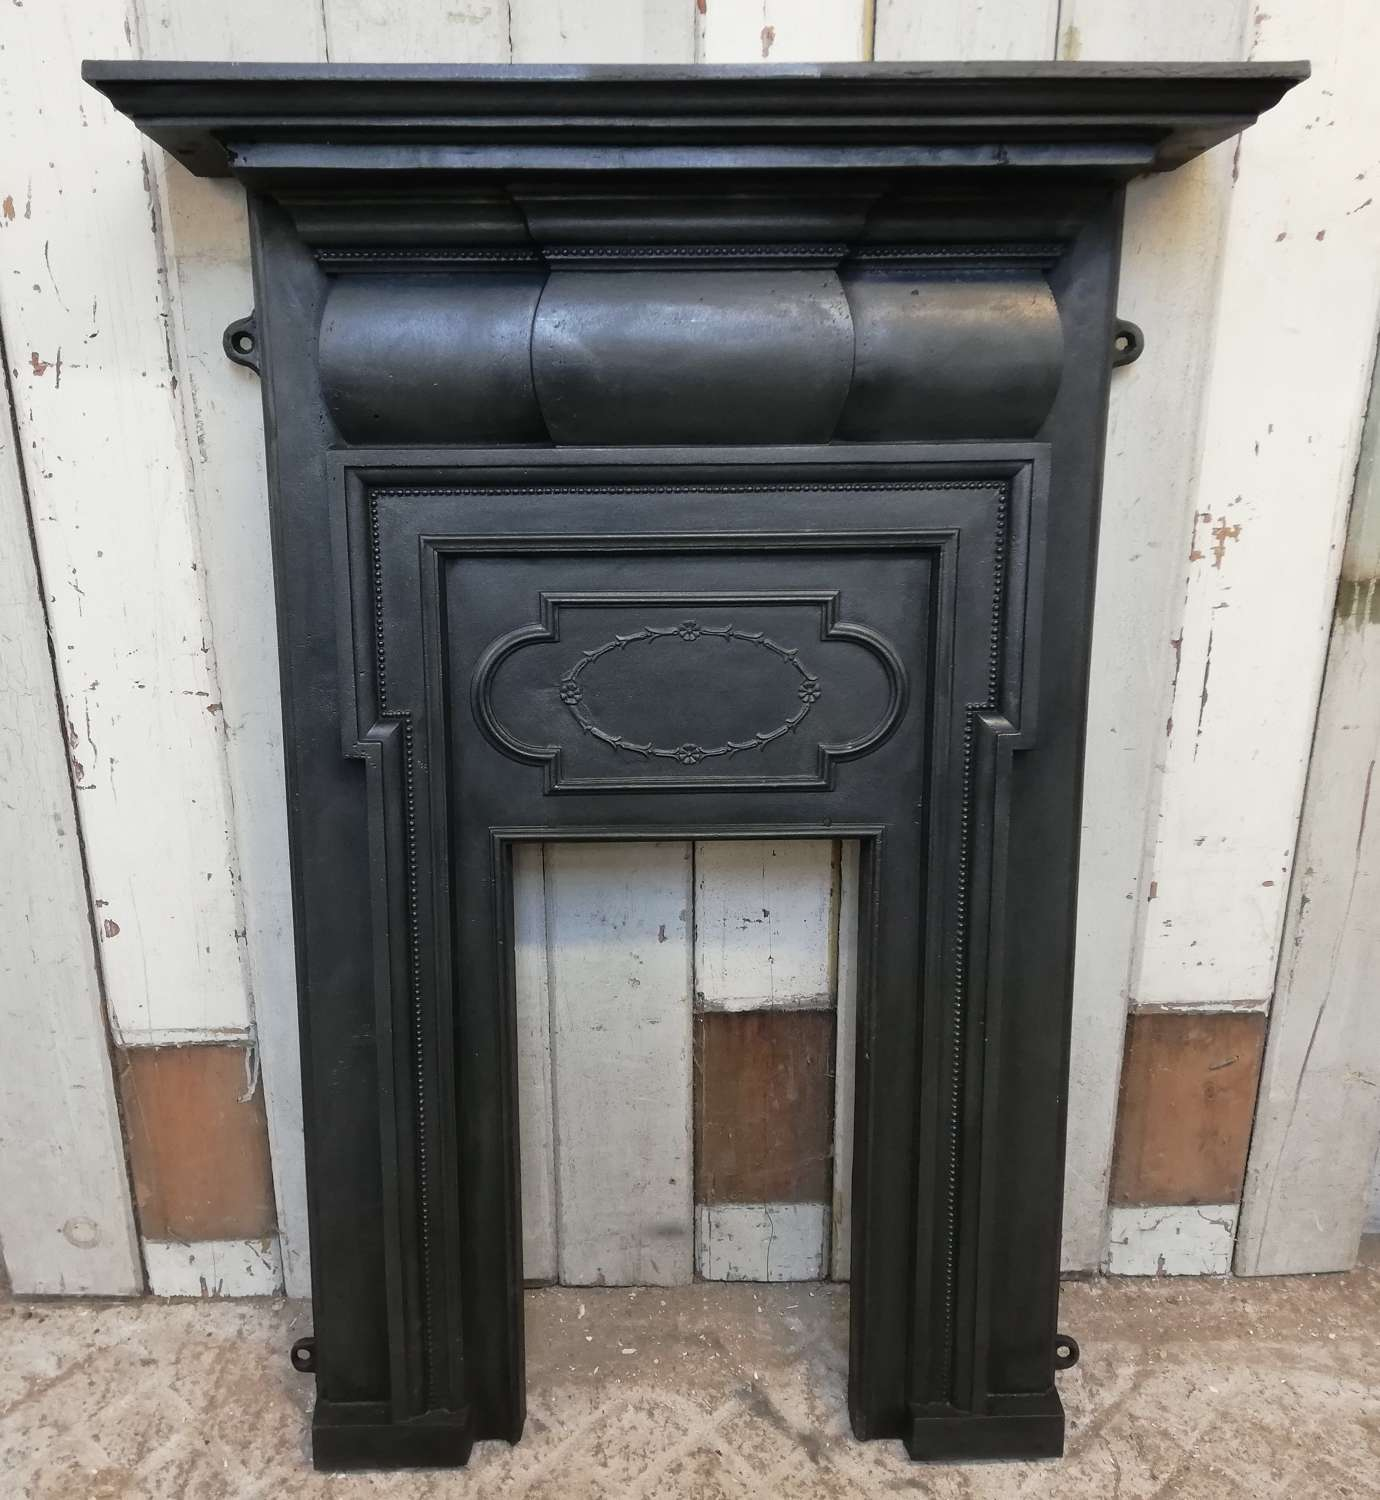 FF0010 A CLASSIC STYLE RECLAIMED EDWARDIAN CAST IRON FIRE FRONT